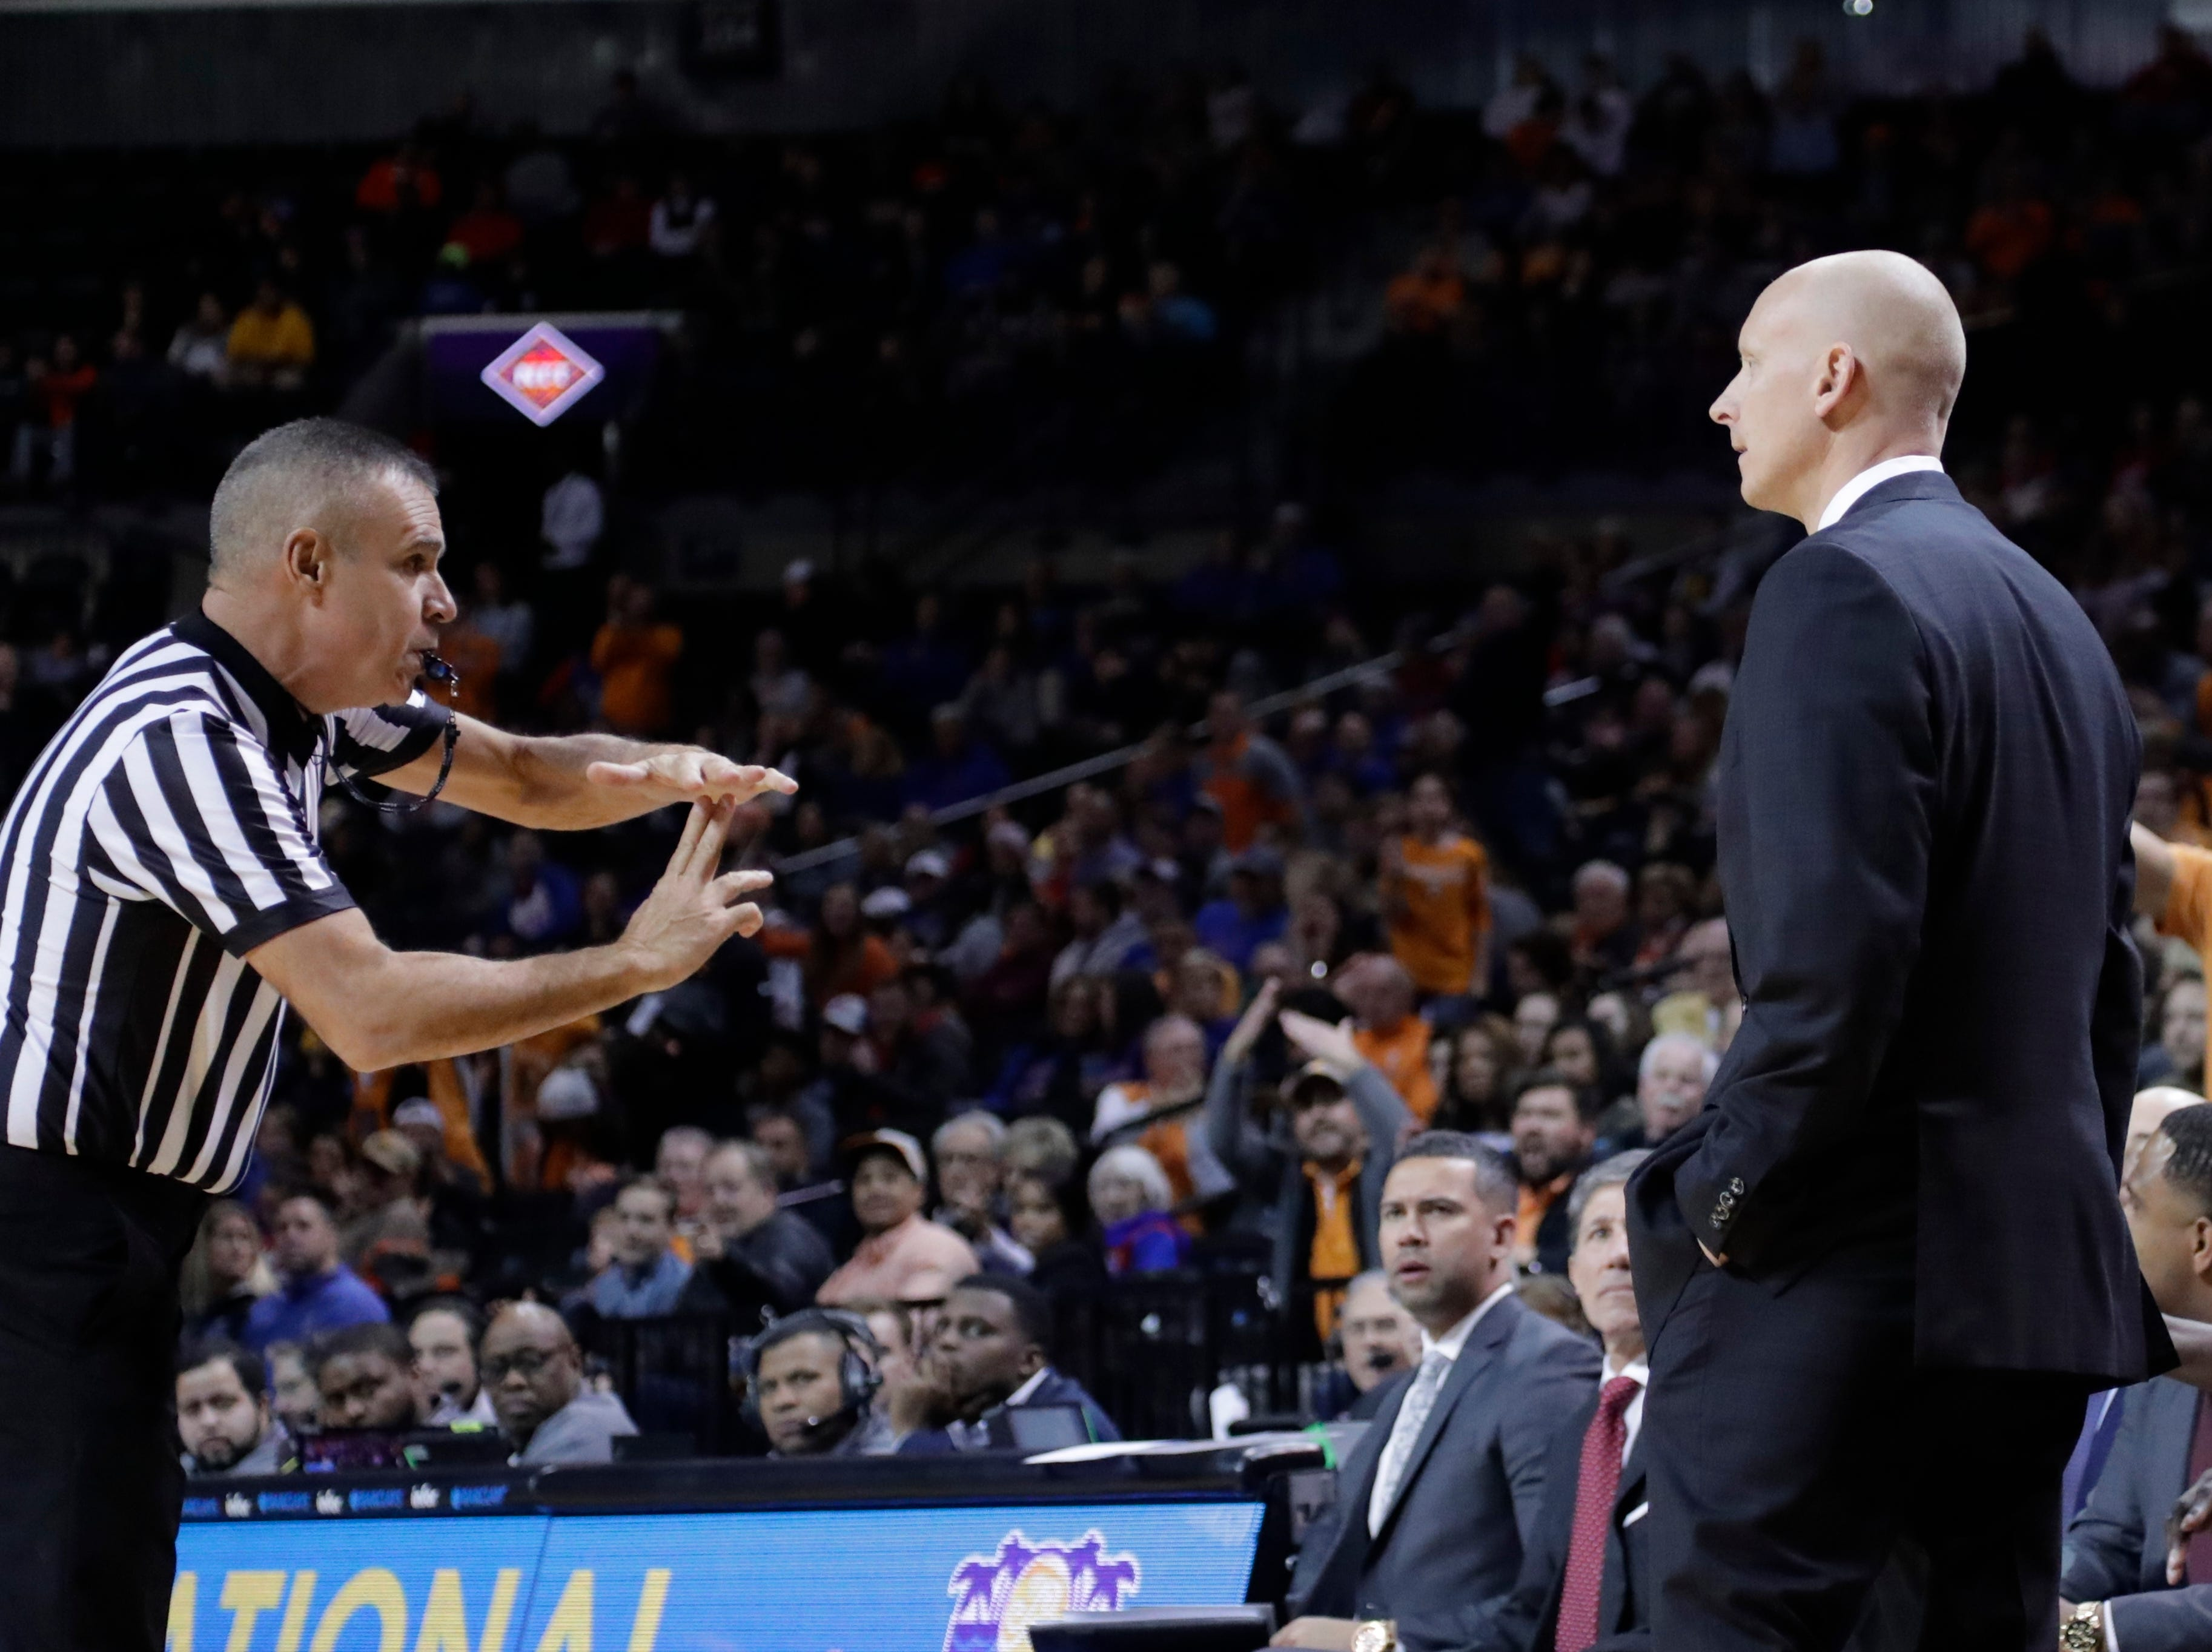 Louisville head coach Chris Mack, right, reacts as he is getting a technical foul from the referee during the second half of an NCAA college basketball game against Tennessee in the NIT Season Tip-Off tournament Wednesday, Nov. 21, 2018, in New York. Tennessee won 92-81. (AP Photo/Frank Franklin II)